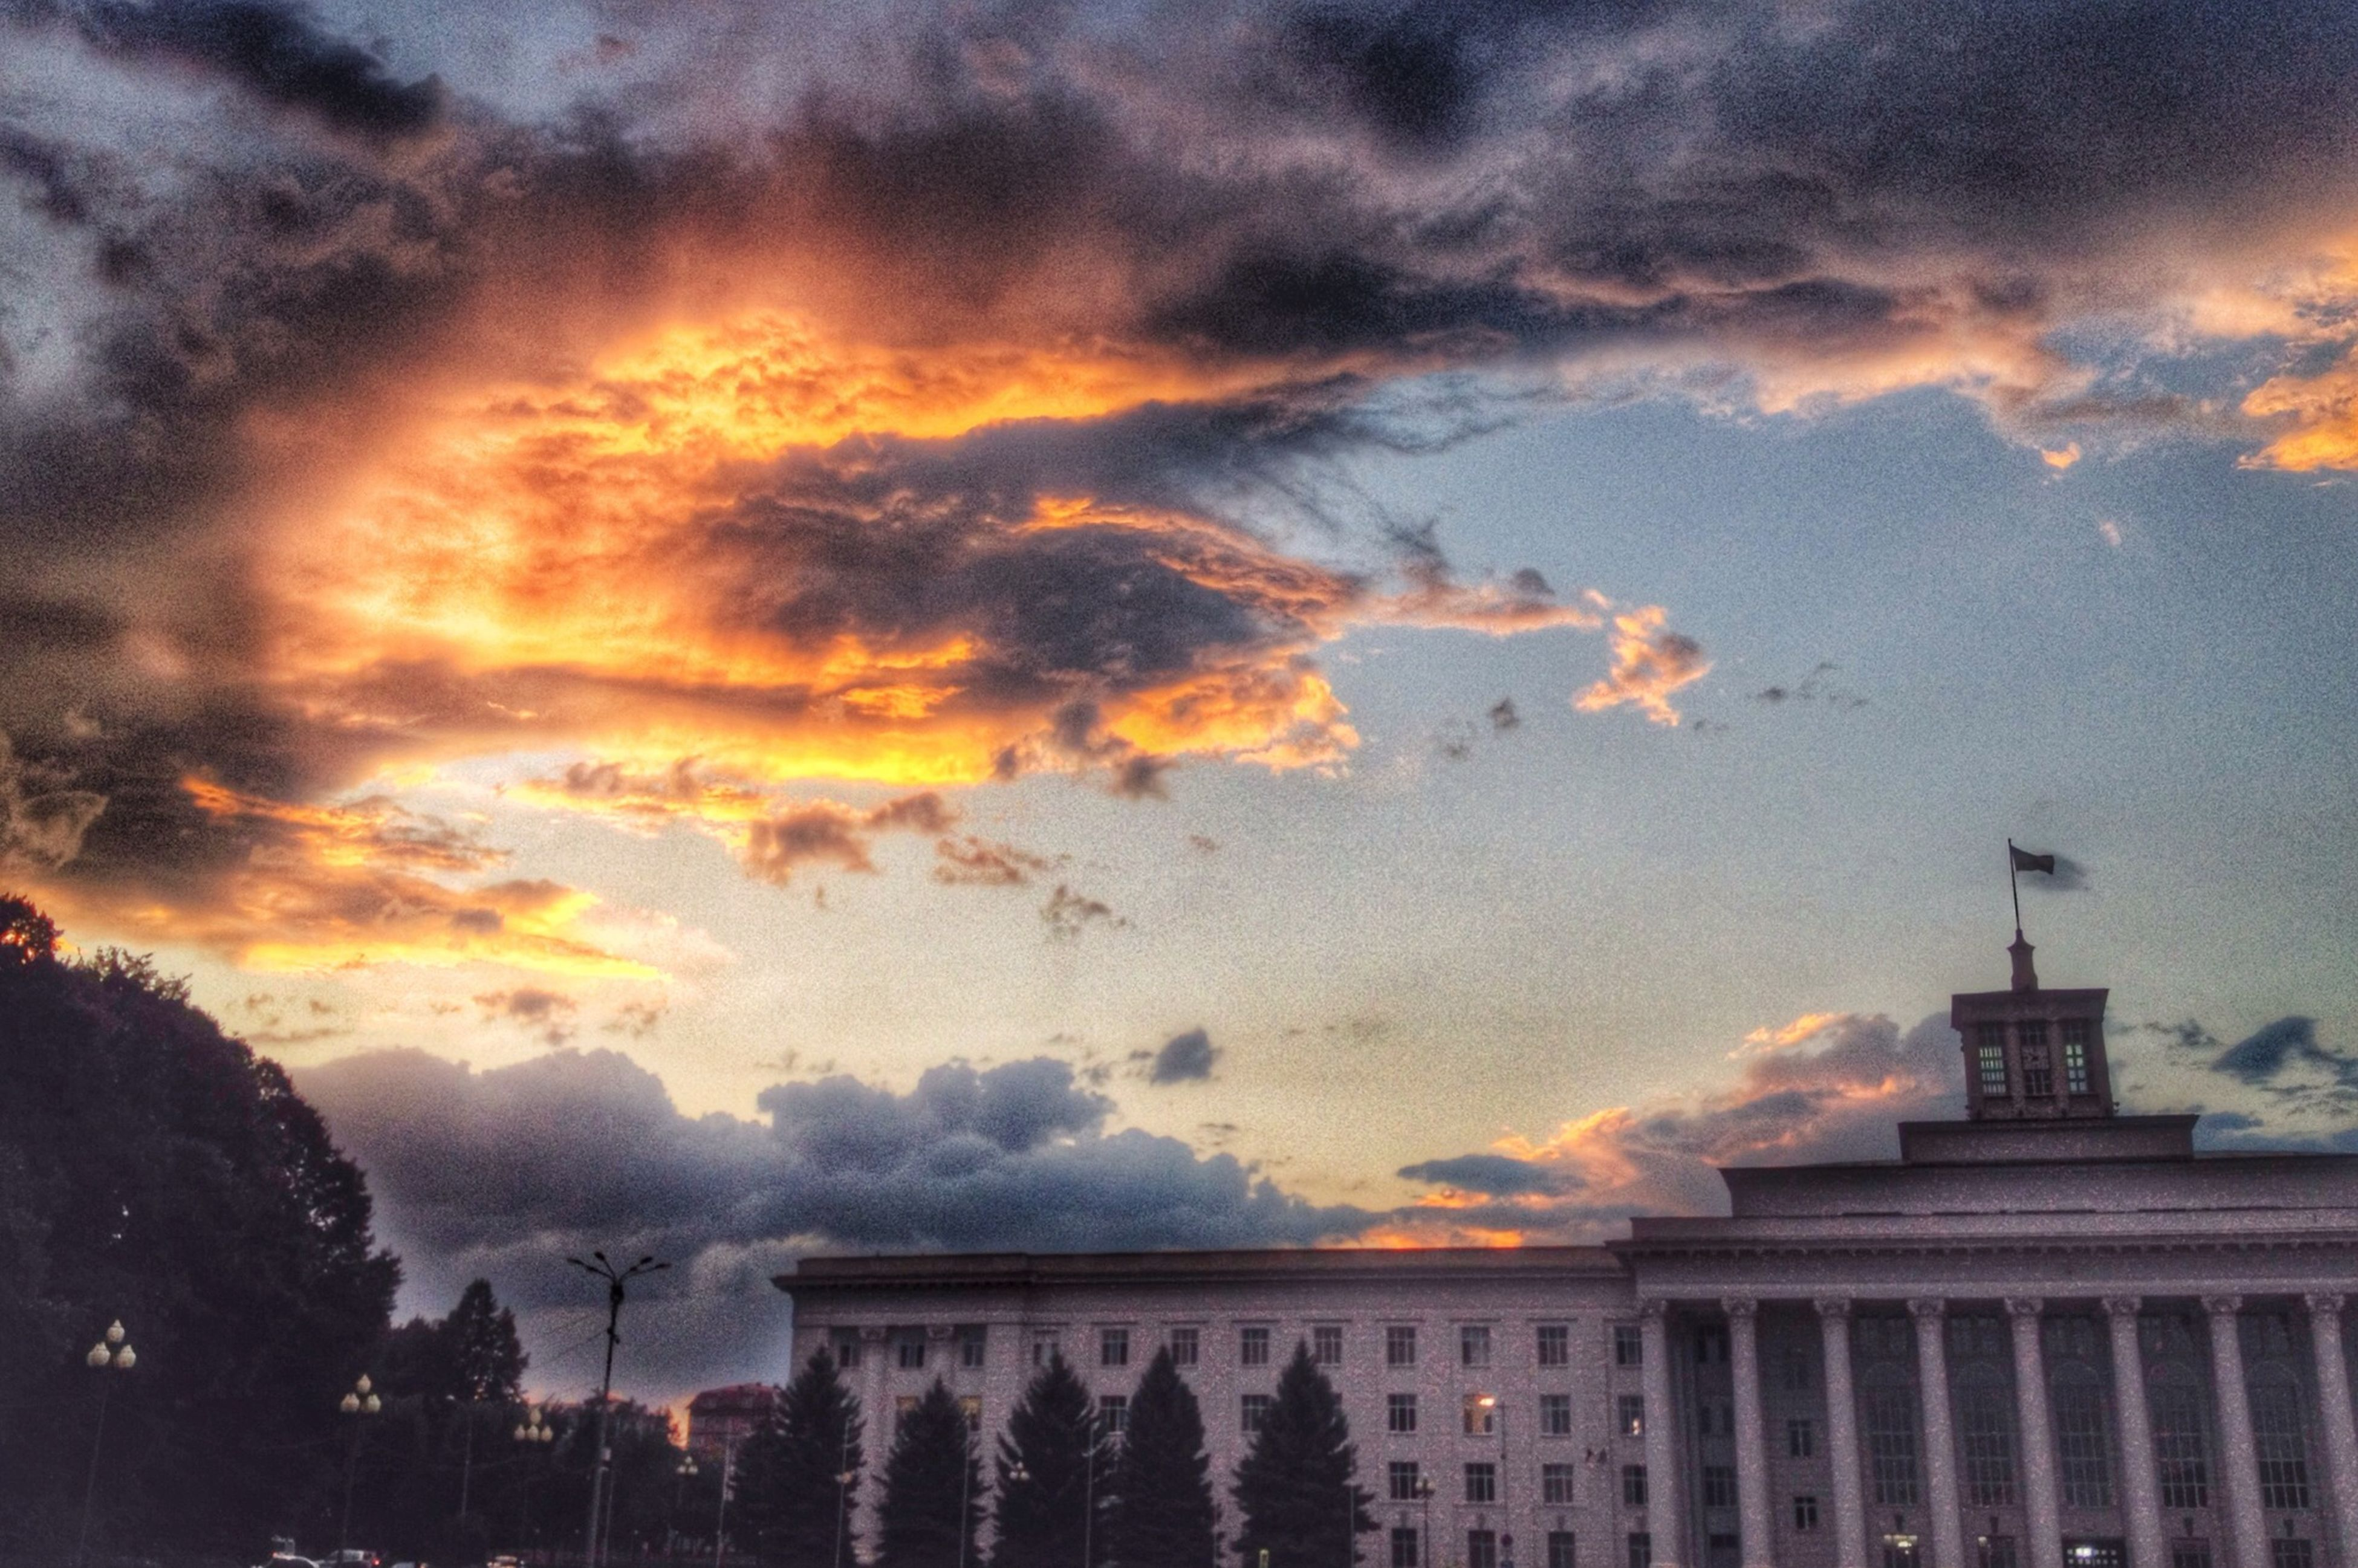 cloud - sky, sunset, sky, cloudy, weather, dramatic sky, architecture, orange color, built structure, building exterior, overcast, storm cloud, scenics, beauty in nature, atmospheric mood, nature, silhouette, cloud, idyllic, moody sky